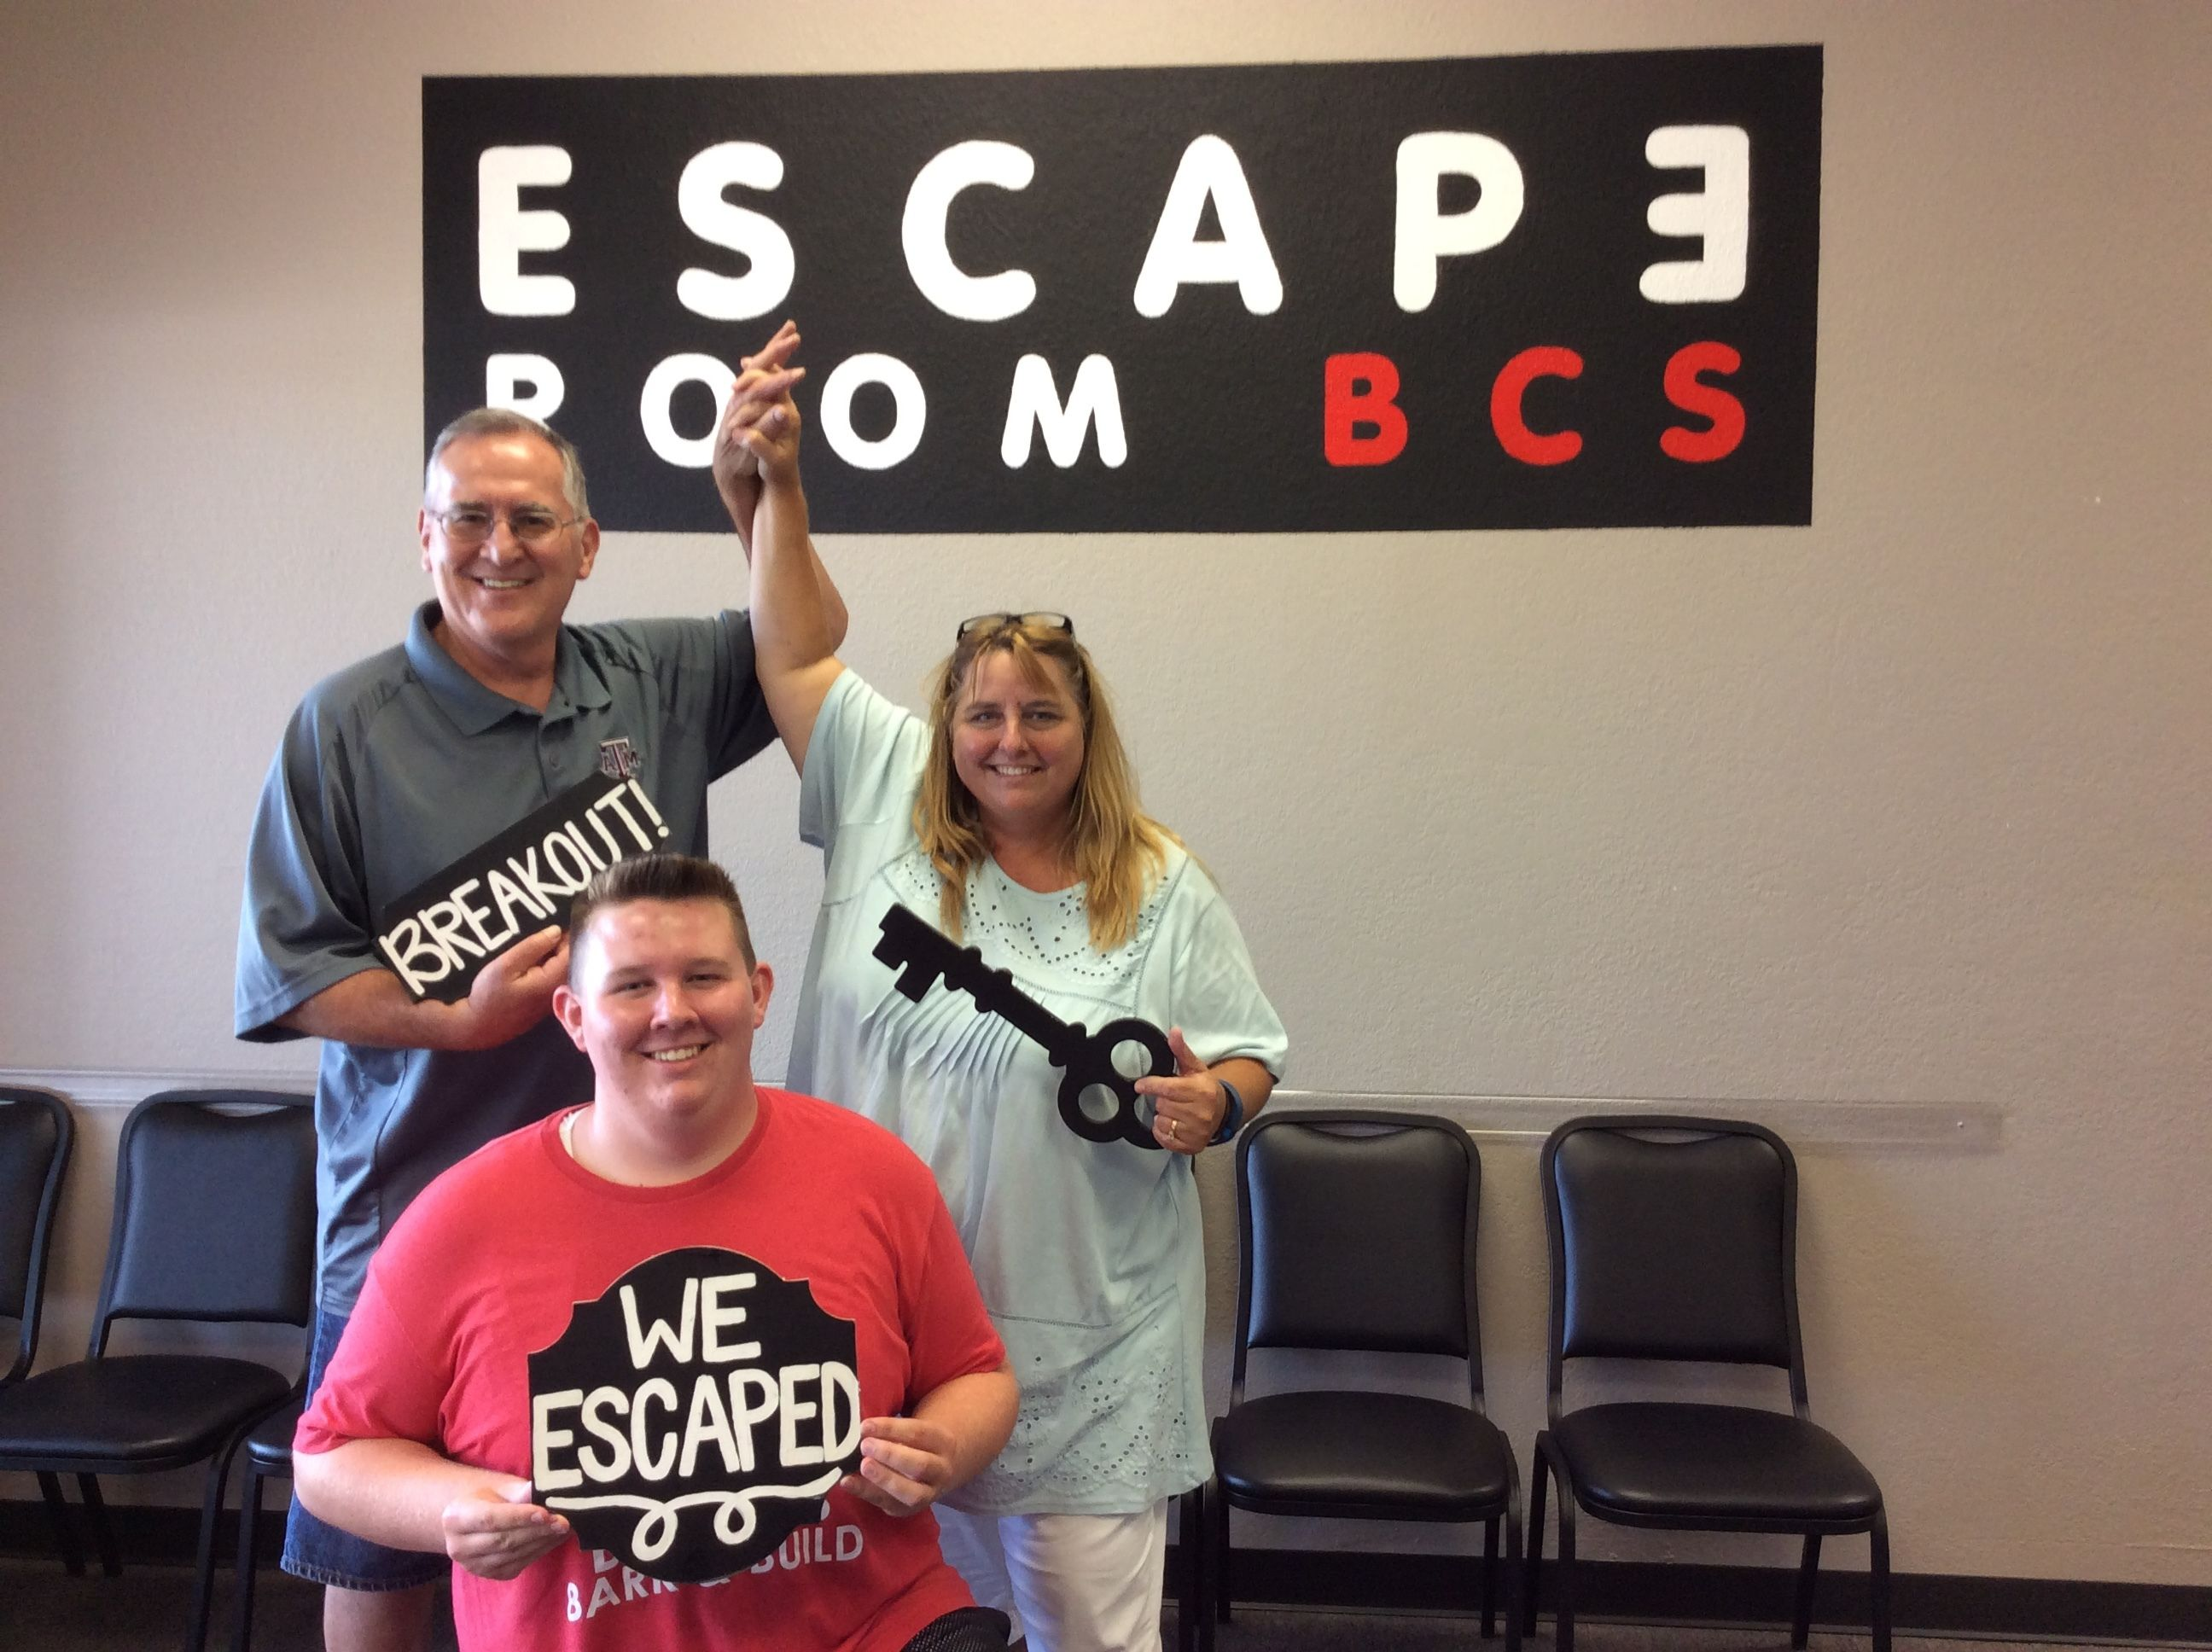 This family escaped Breakout in 44 minutes!